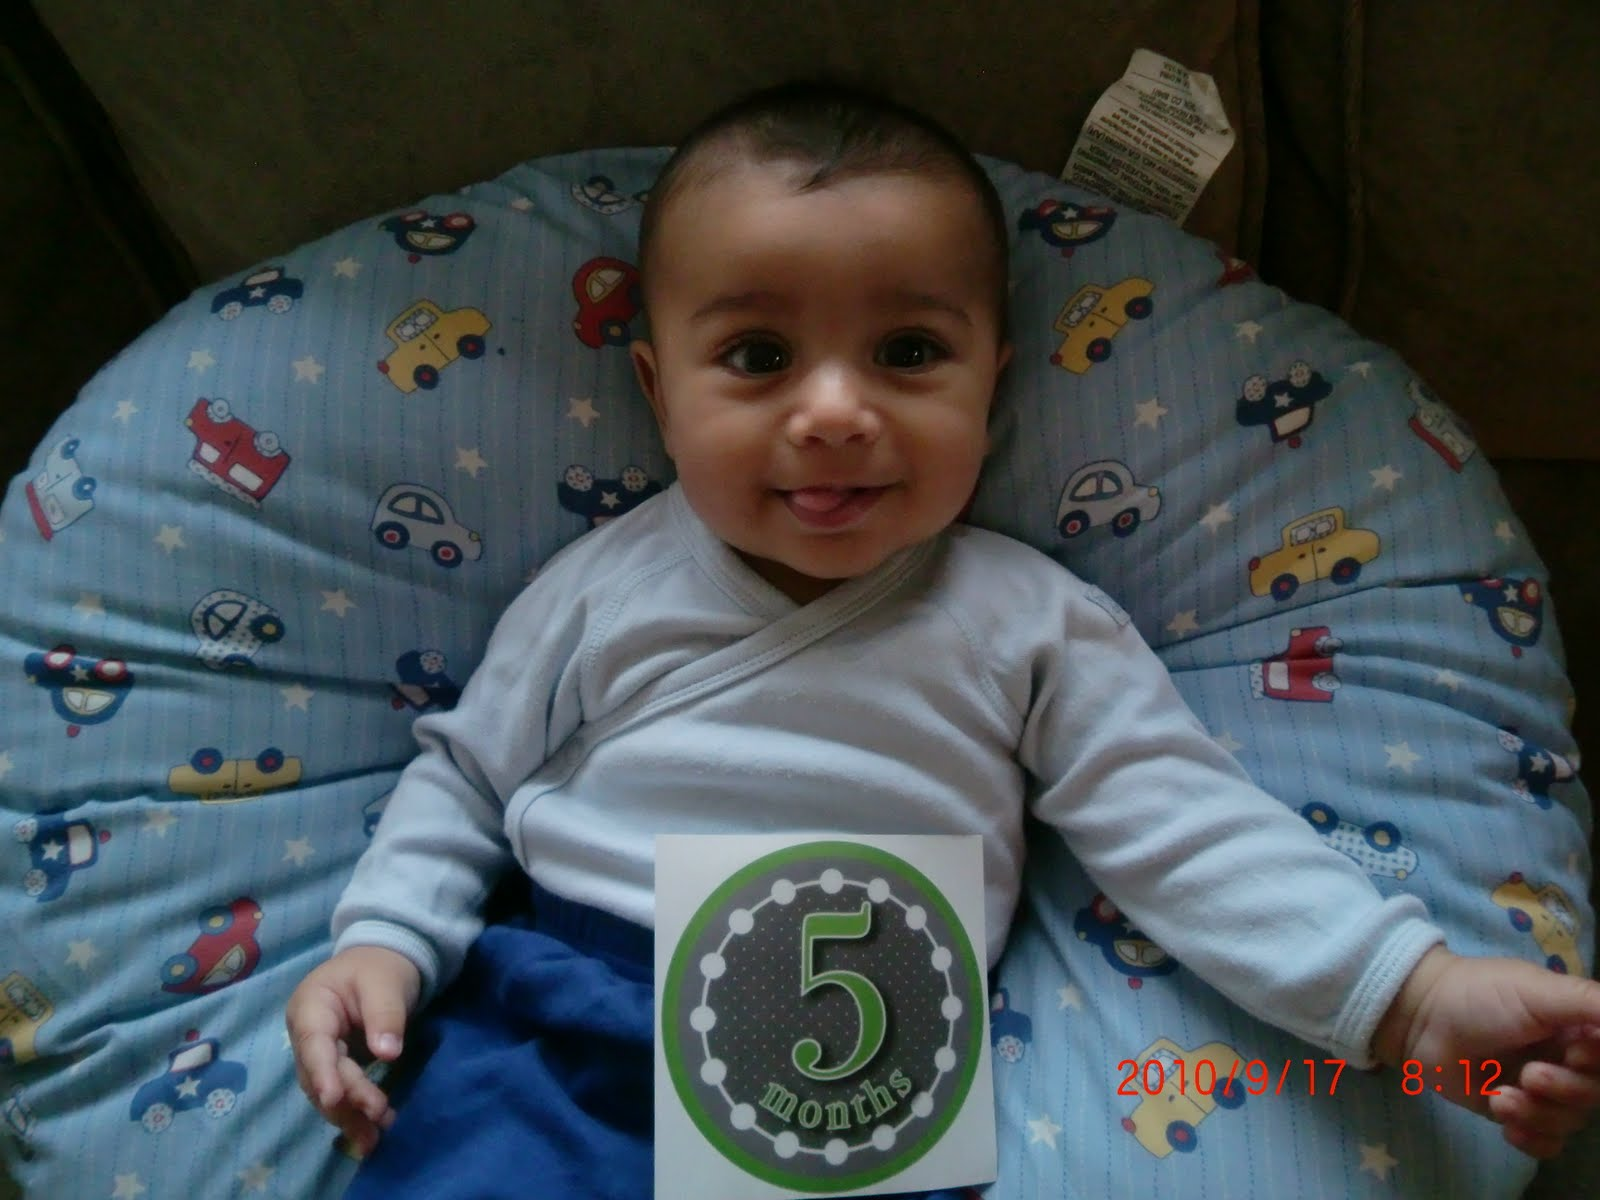 5 Months old!